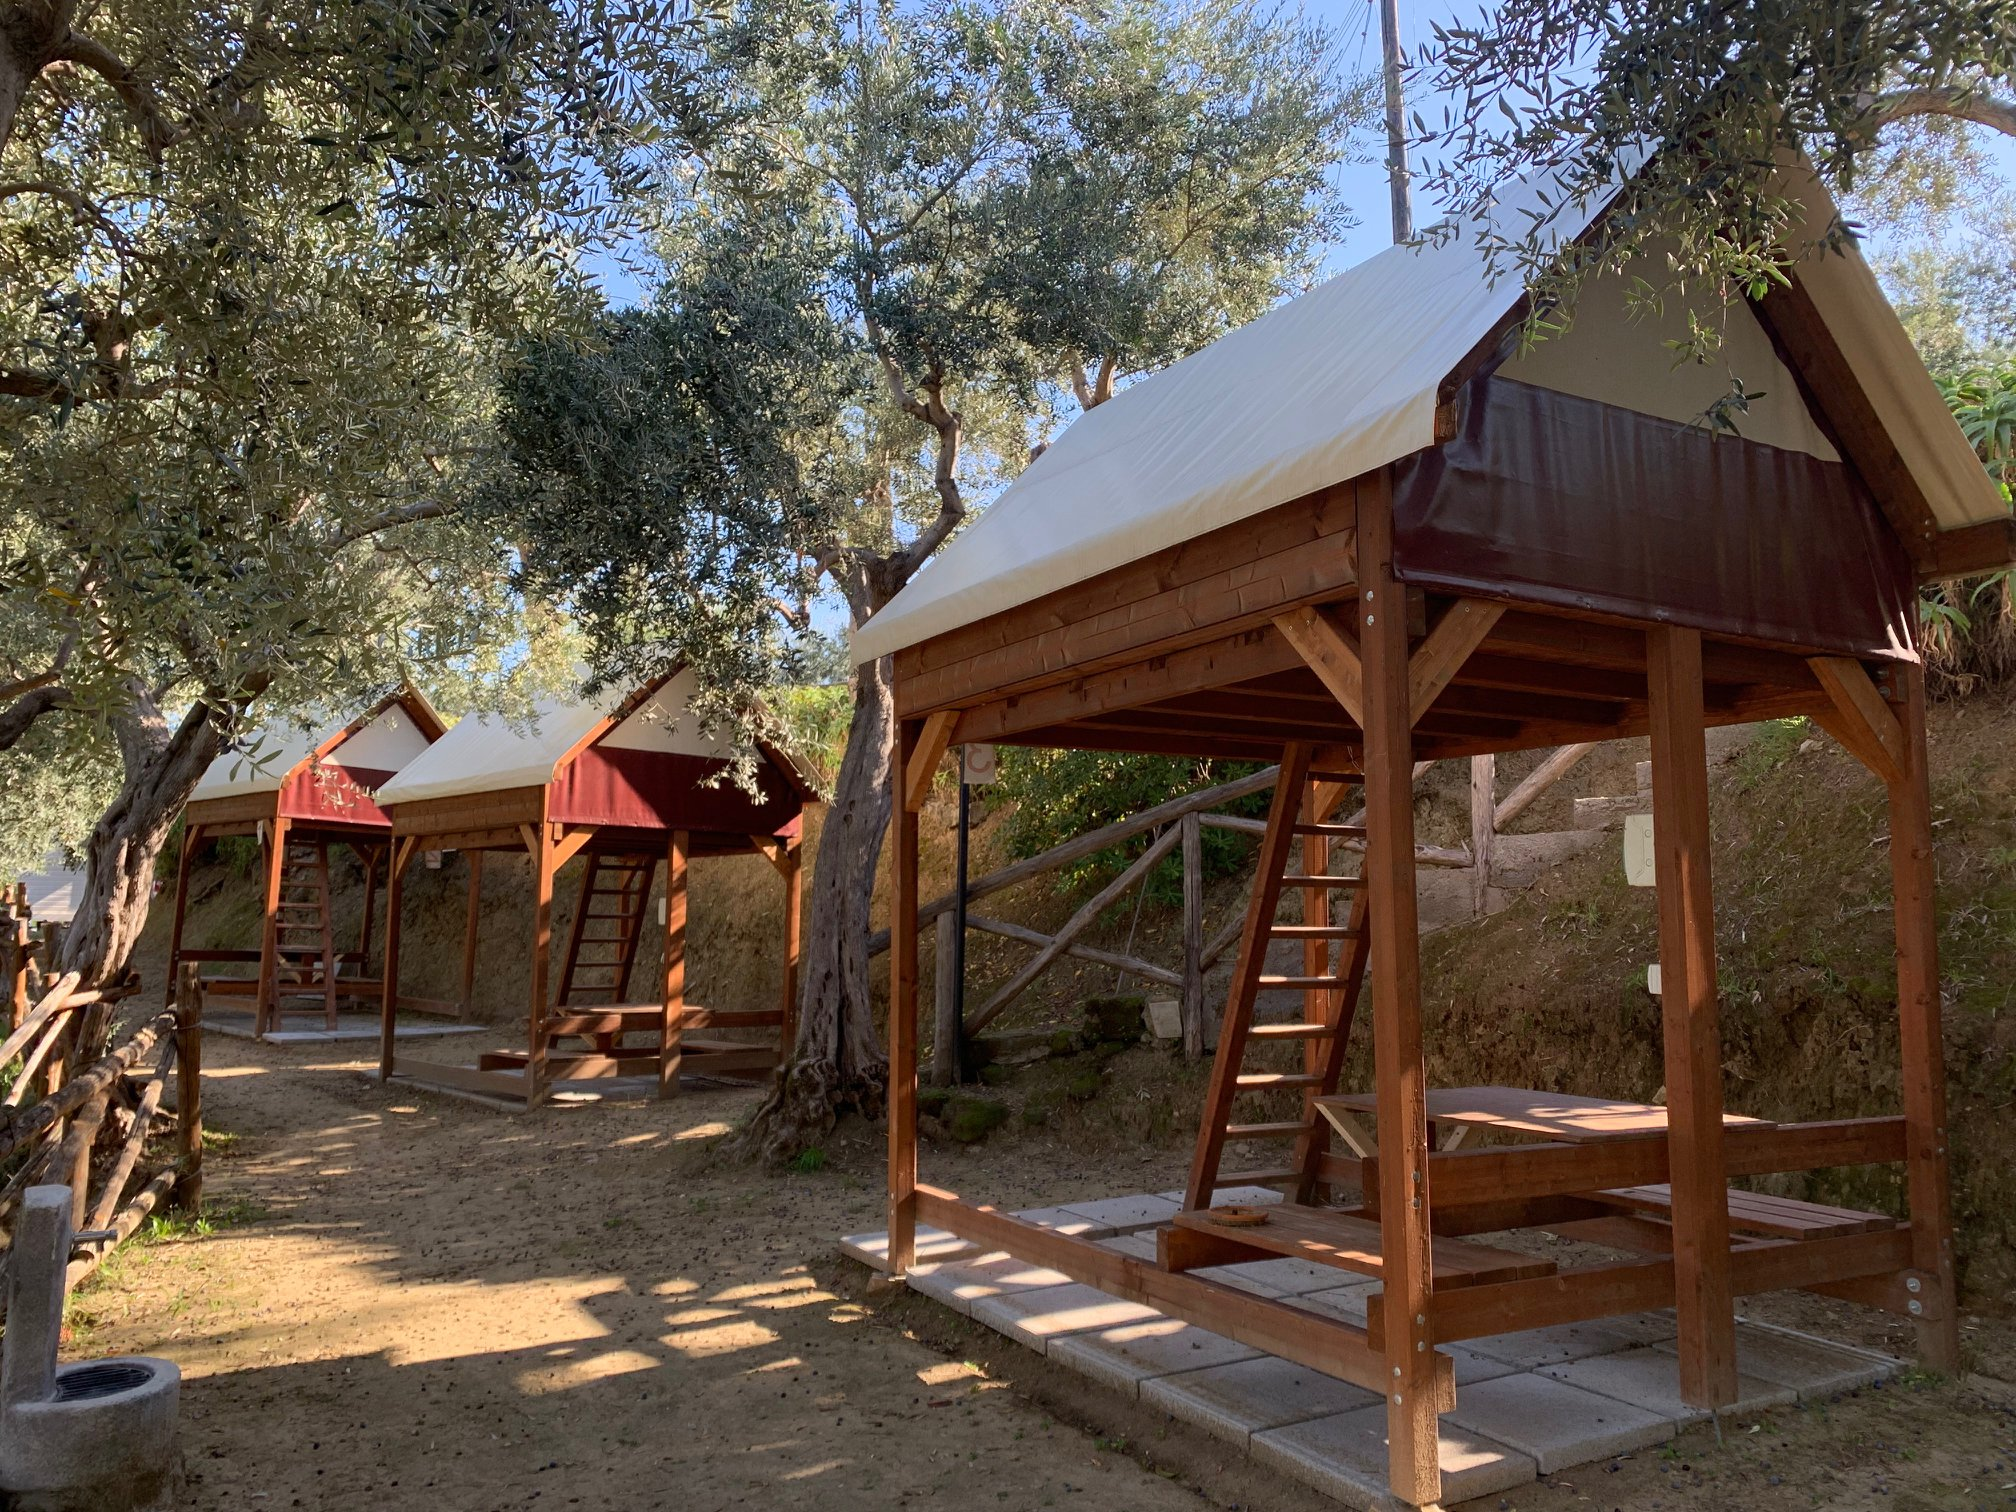 campings in Napels